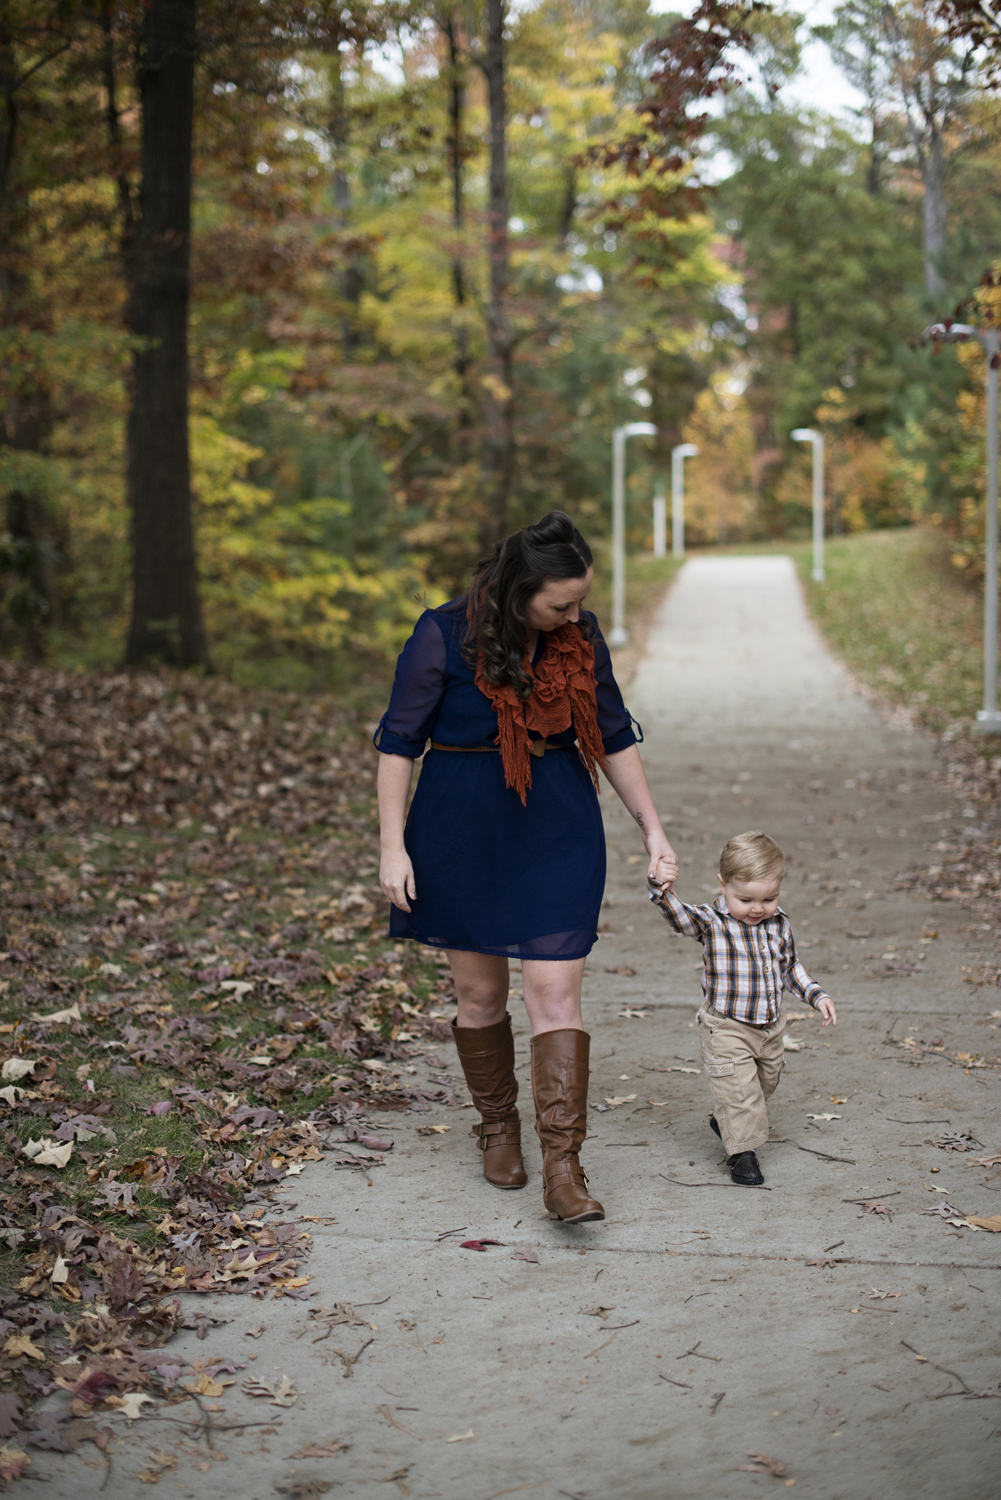 Cute family picture ideas for mom and baby